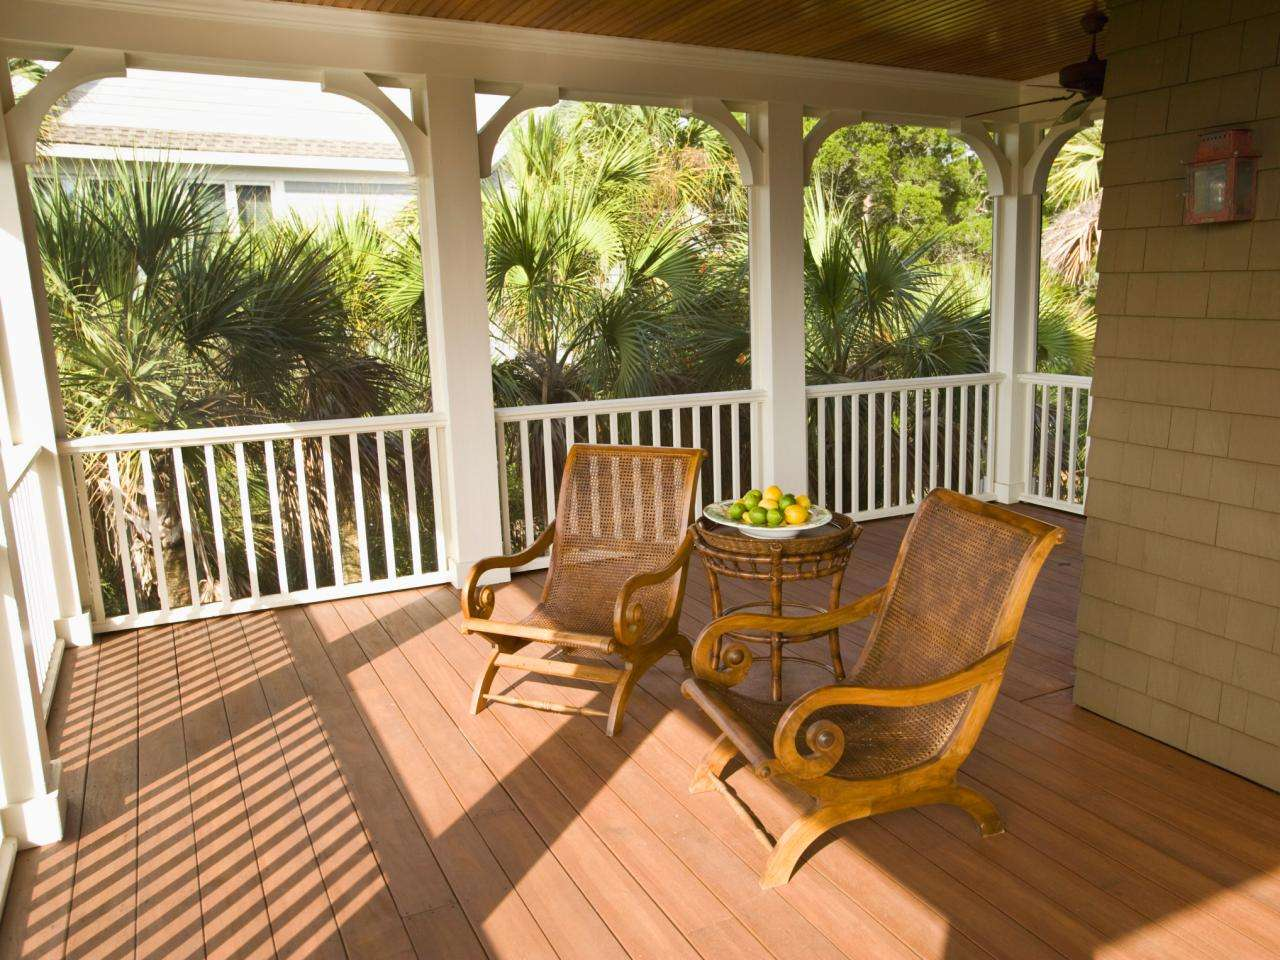 Porch Posts Columns Outdoor Design Landscaping Ideas Porches